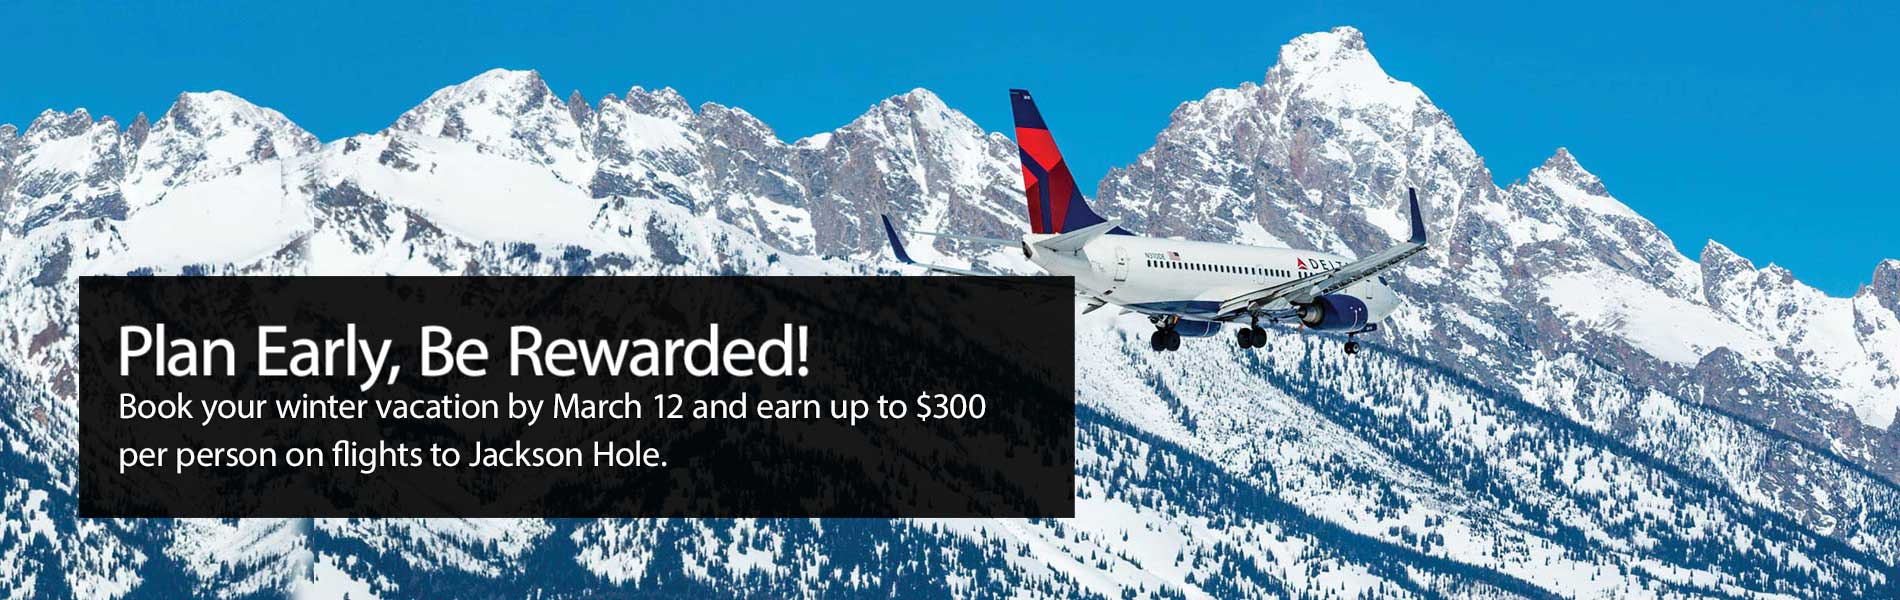 Plan Early, Be Rewarded. Book your winter vacation by March 12 and earn up to $300 per person on flights to Jackson Hole.